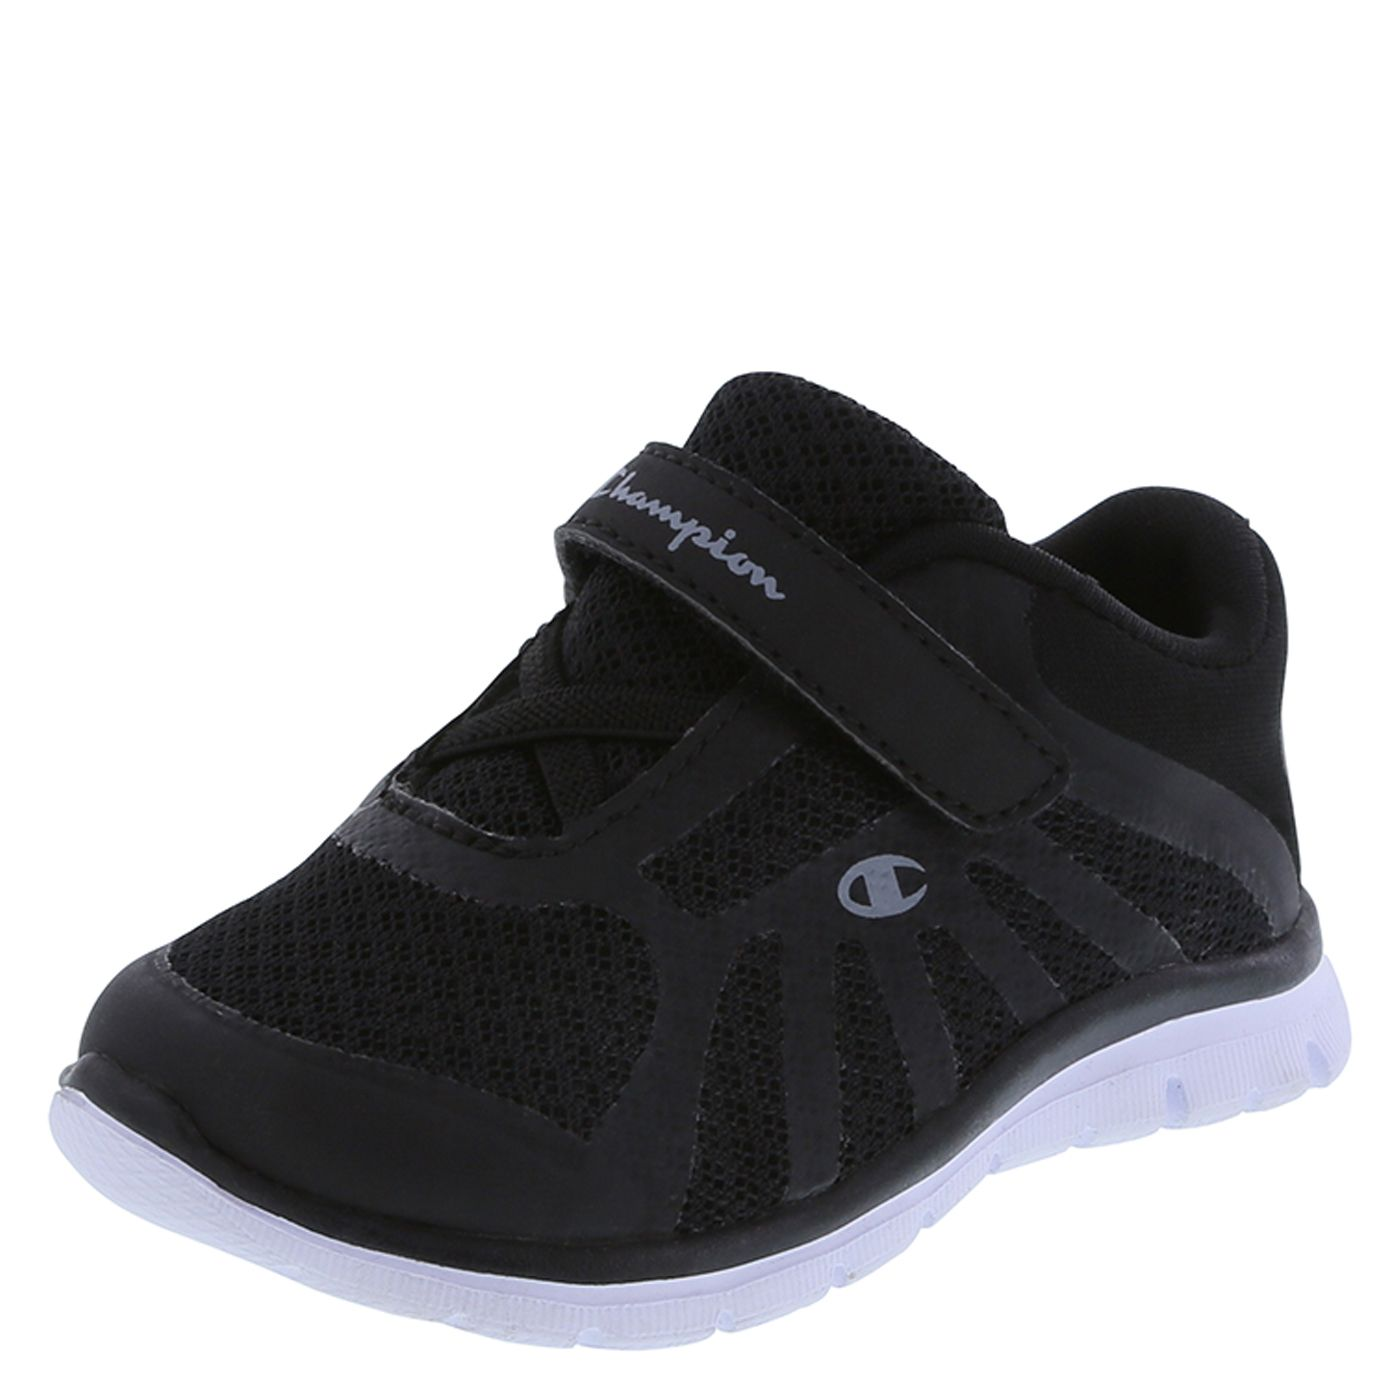 Roller shoes payless - Champions Shoe Payless Shoe Black Boys Infant Gusto Runner Champion Payless Shoes